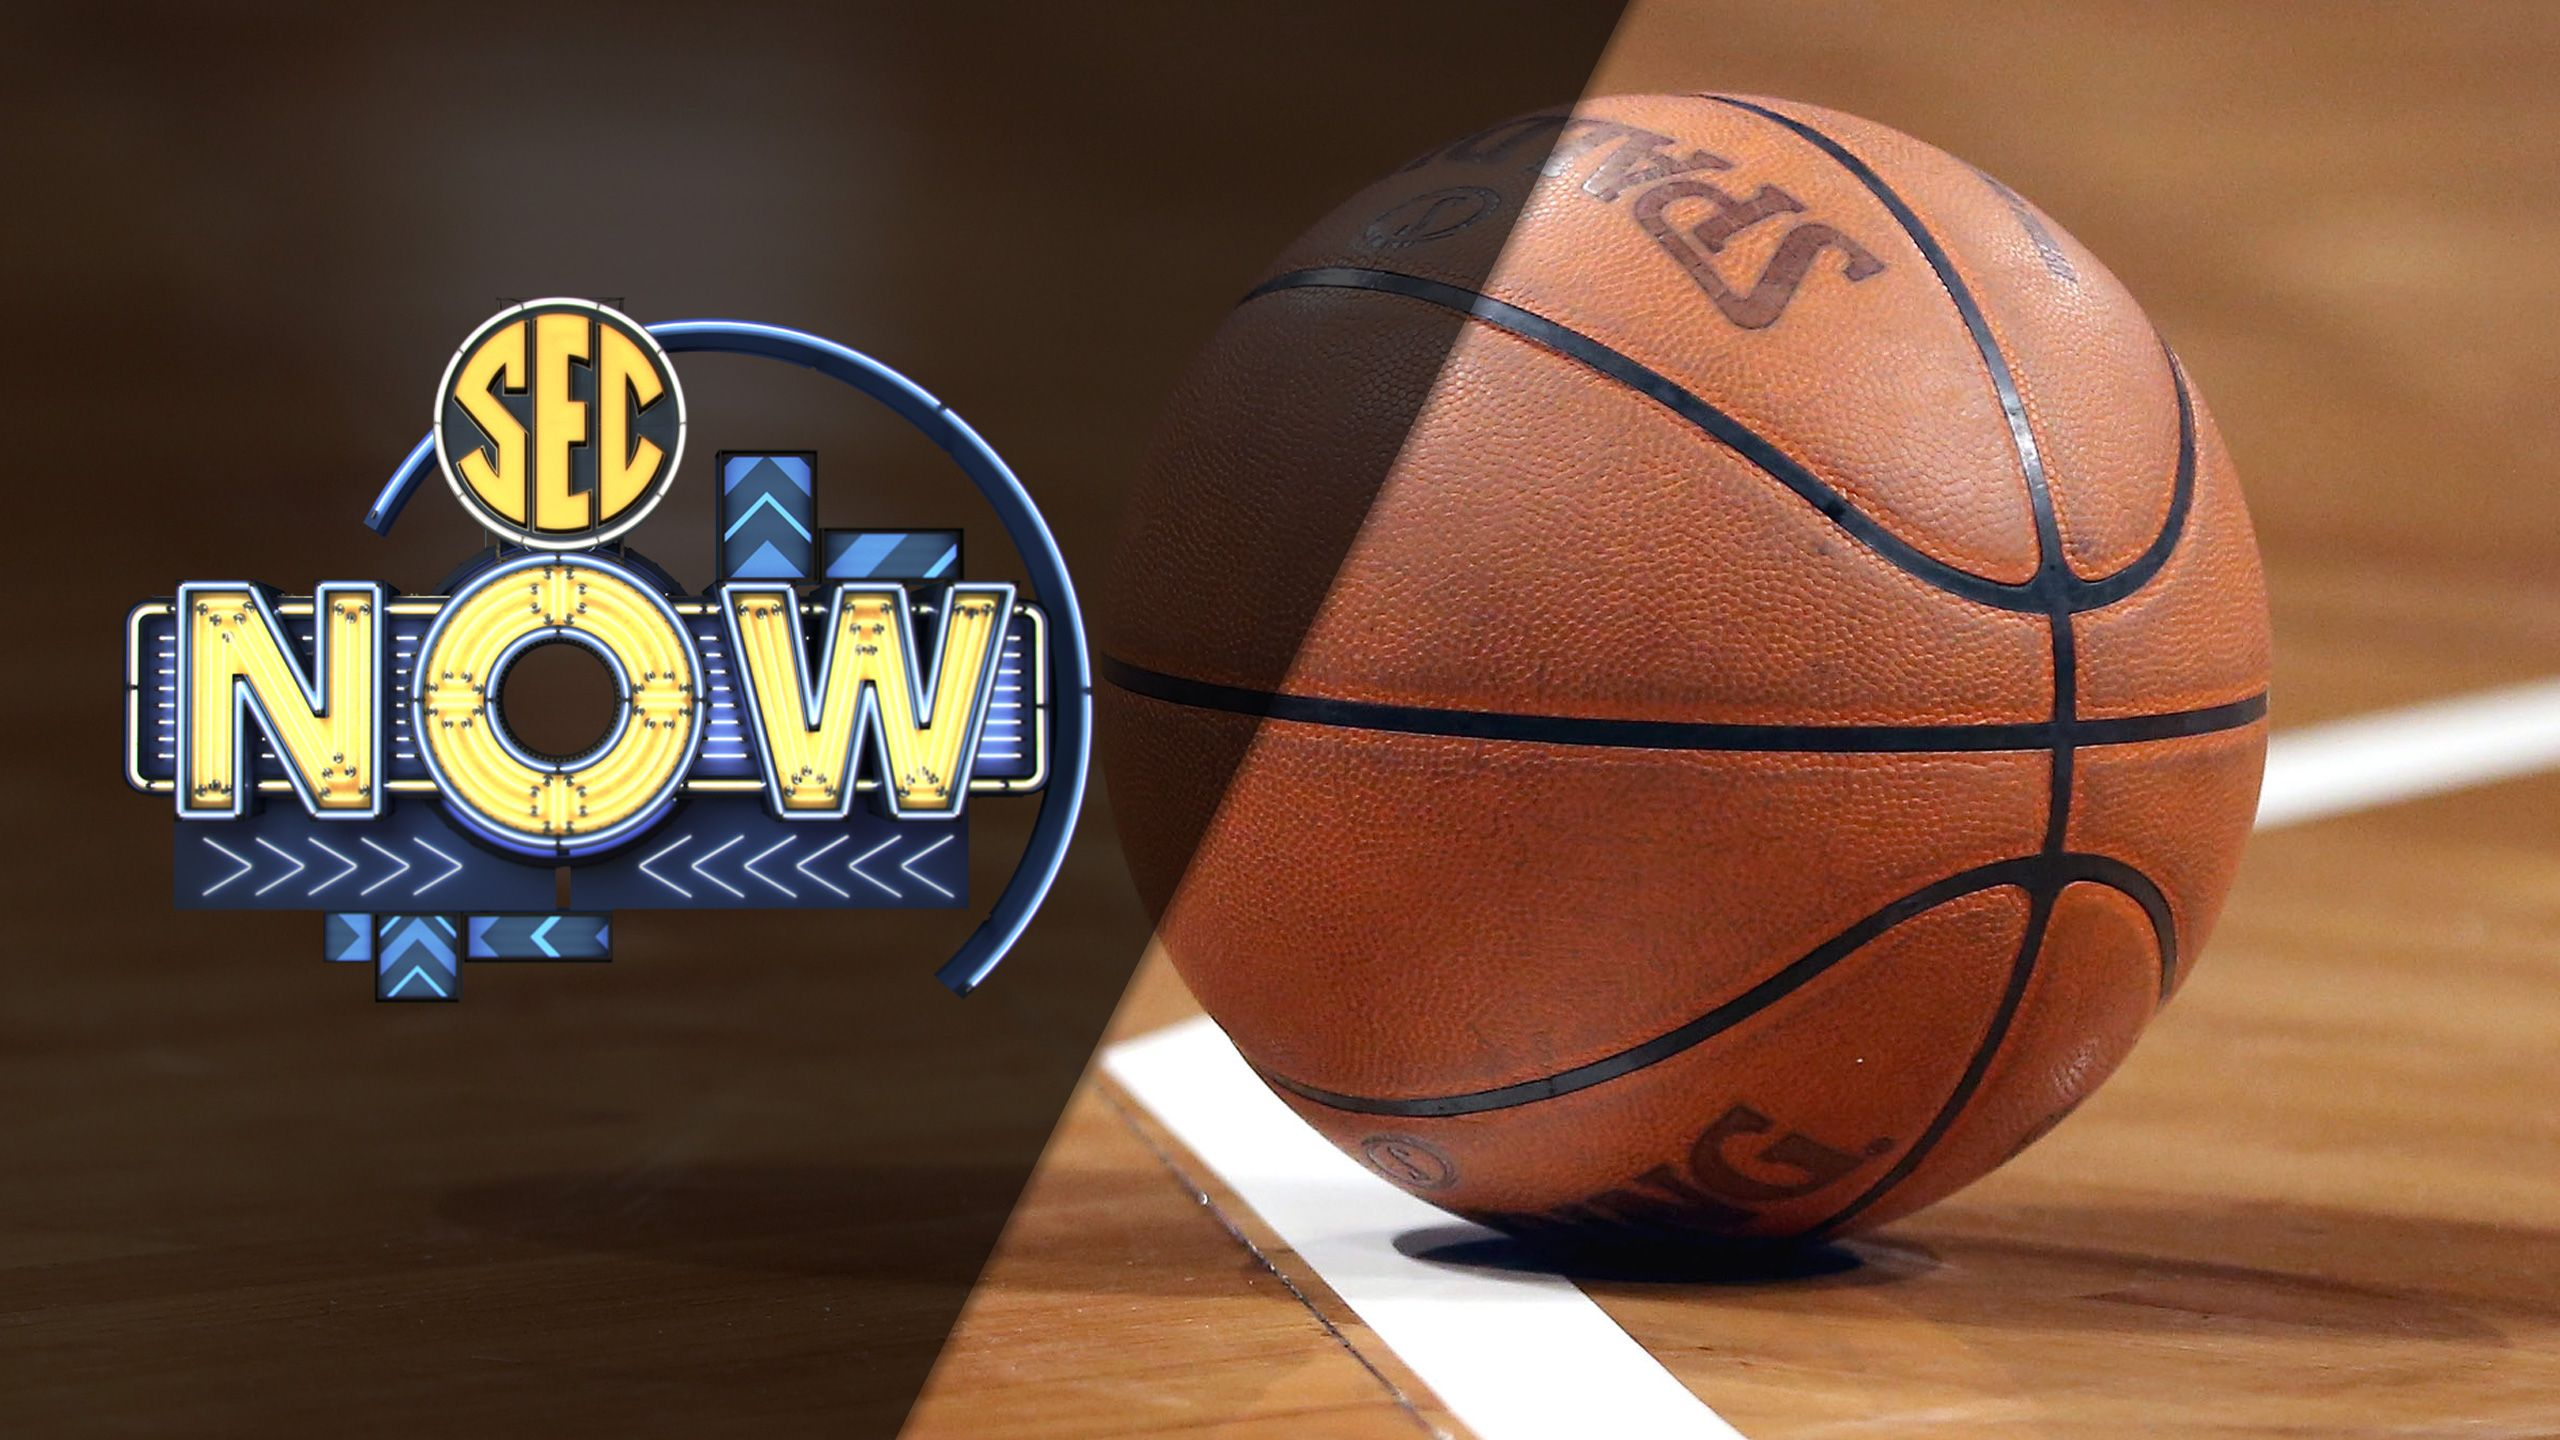 Wed, 10/18 - SEC Now: Men's Basketball Media Days